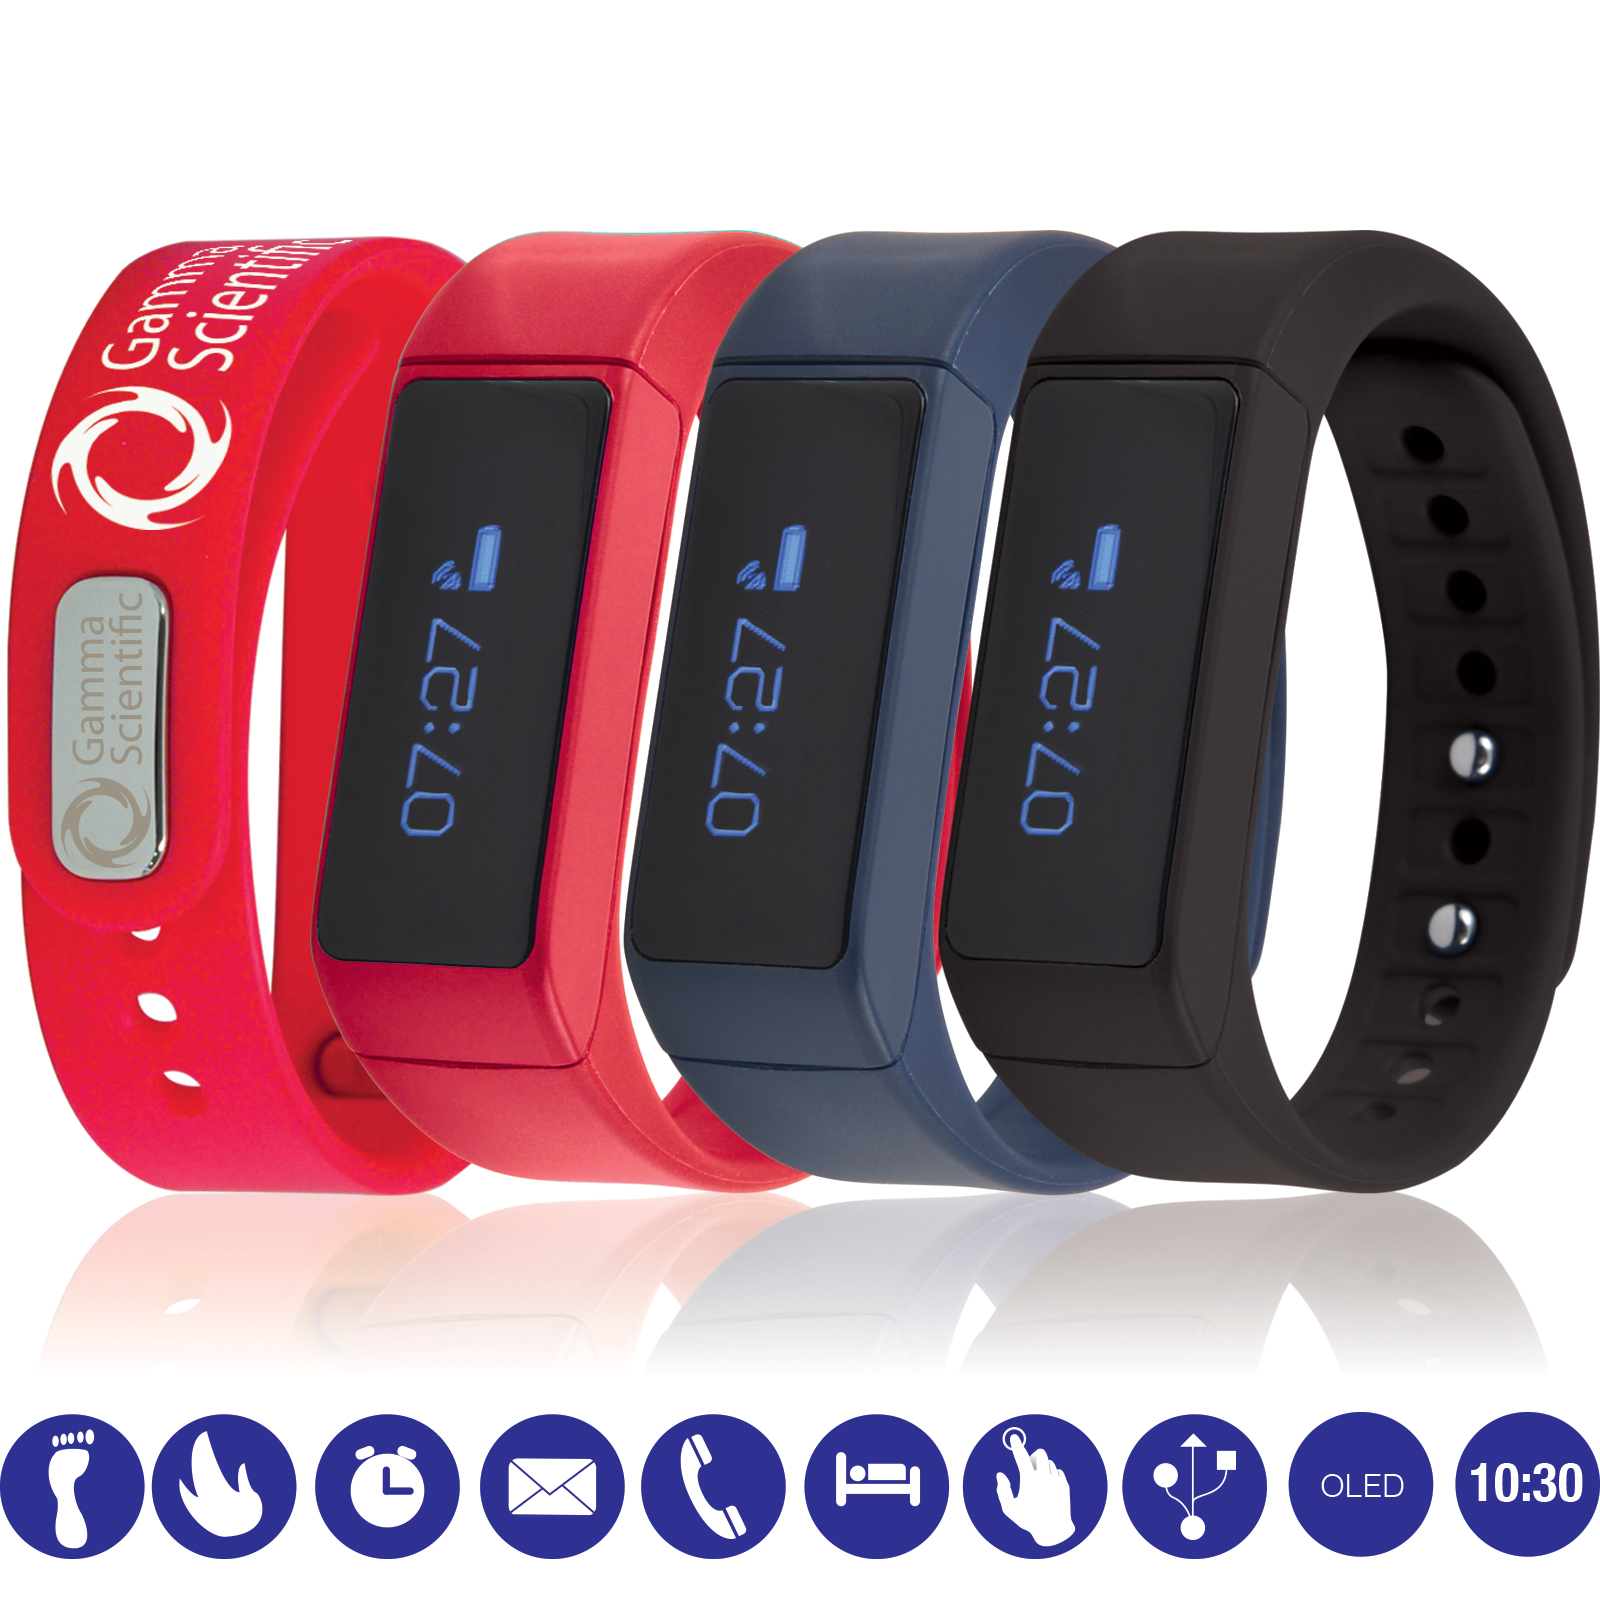 Promotional Product Thinkfit Fitness Band